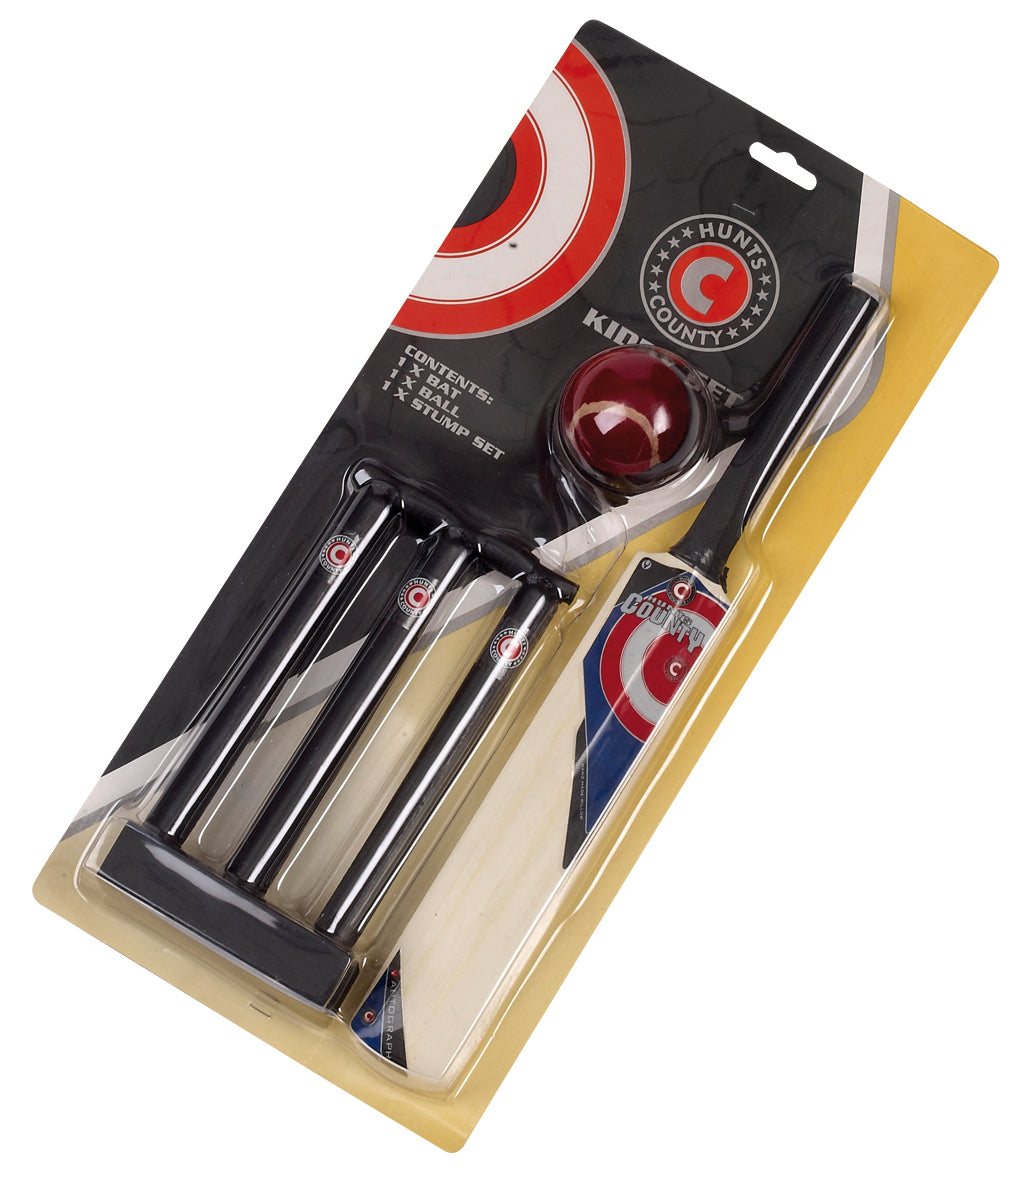 Hunts County Mini Bat, Ball & Stumps Set - The Incredible Cricket Company